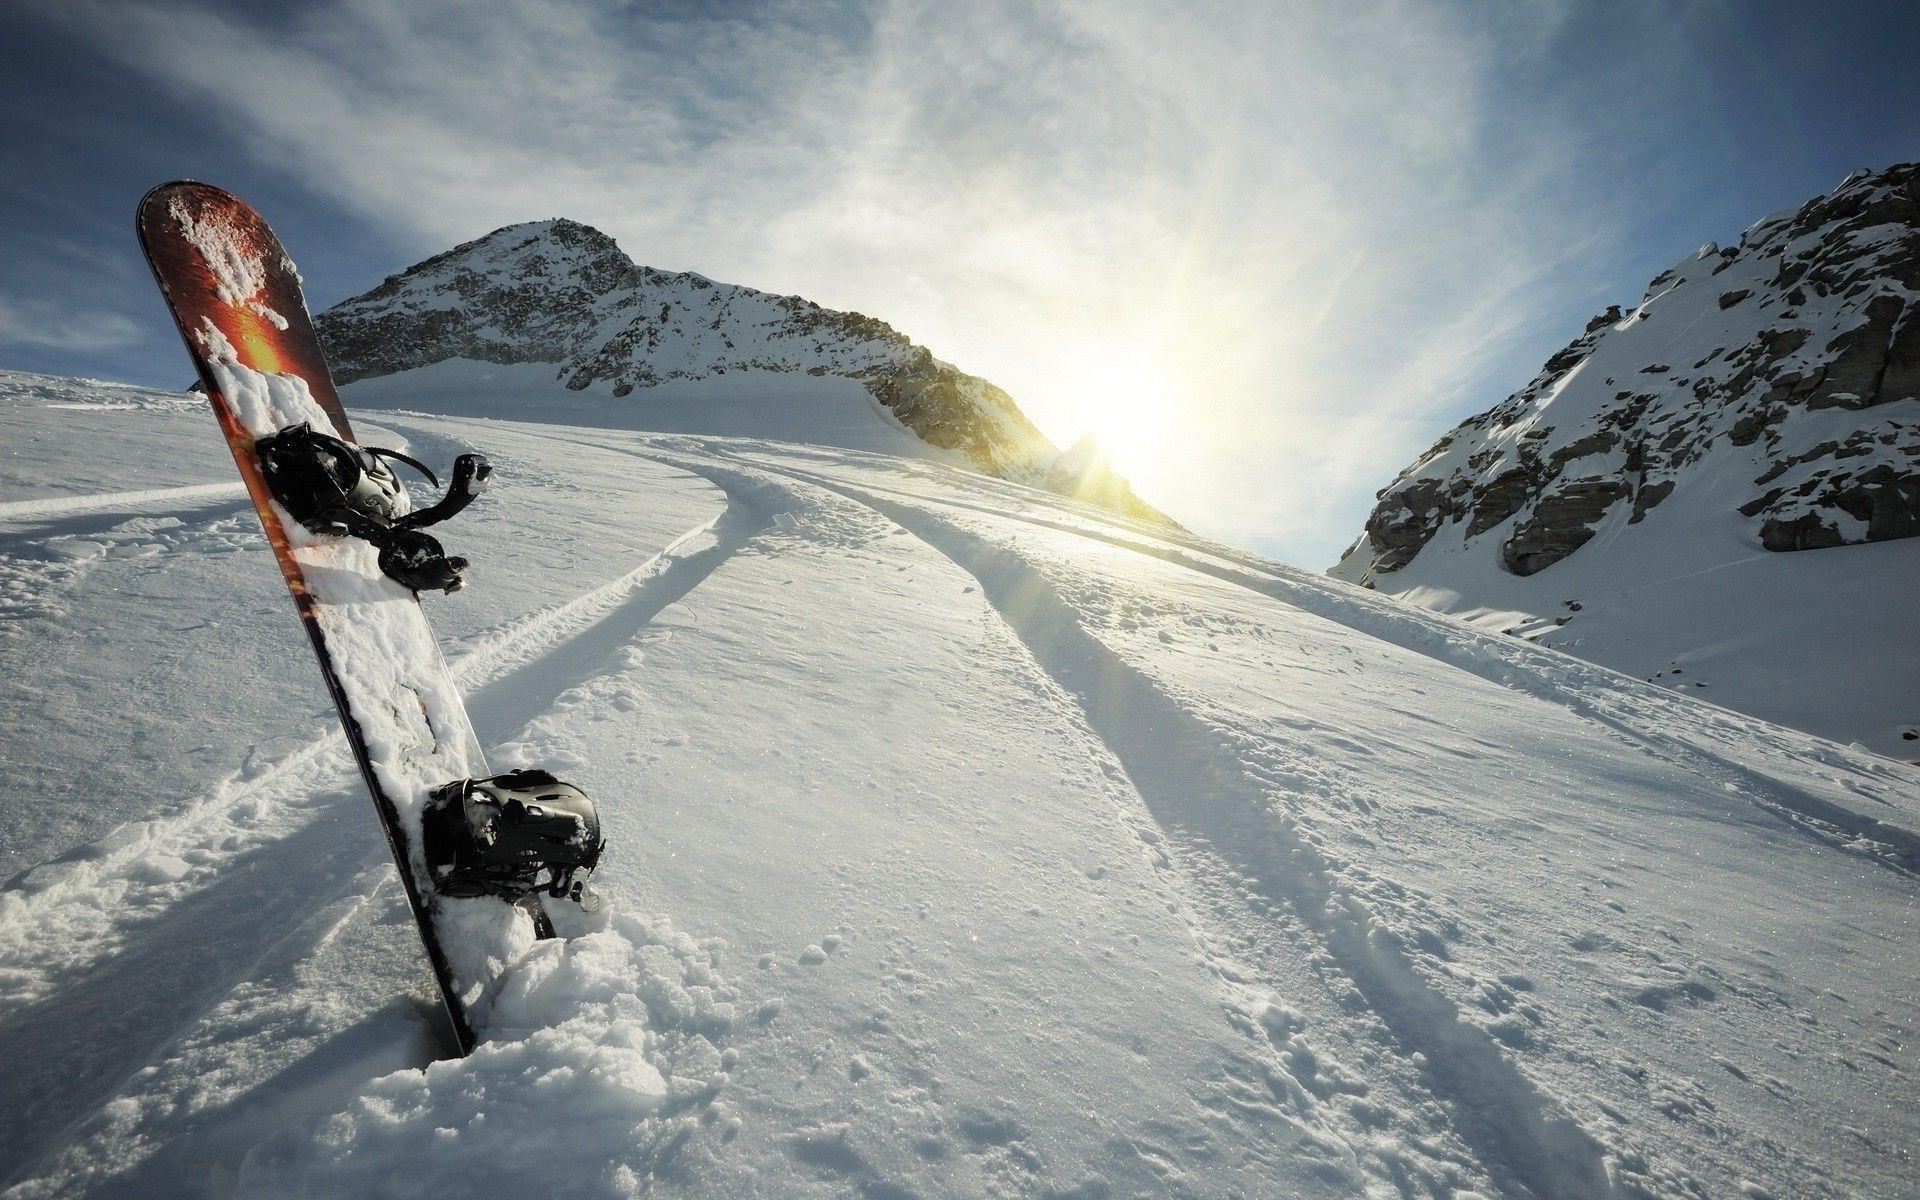 snowboard outdoor wallpaper desktop - photo #21